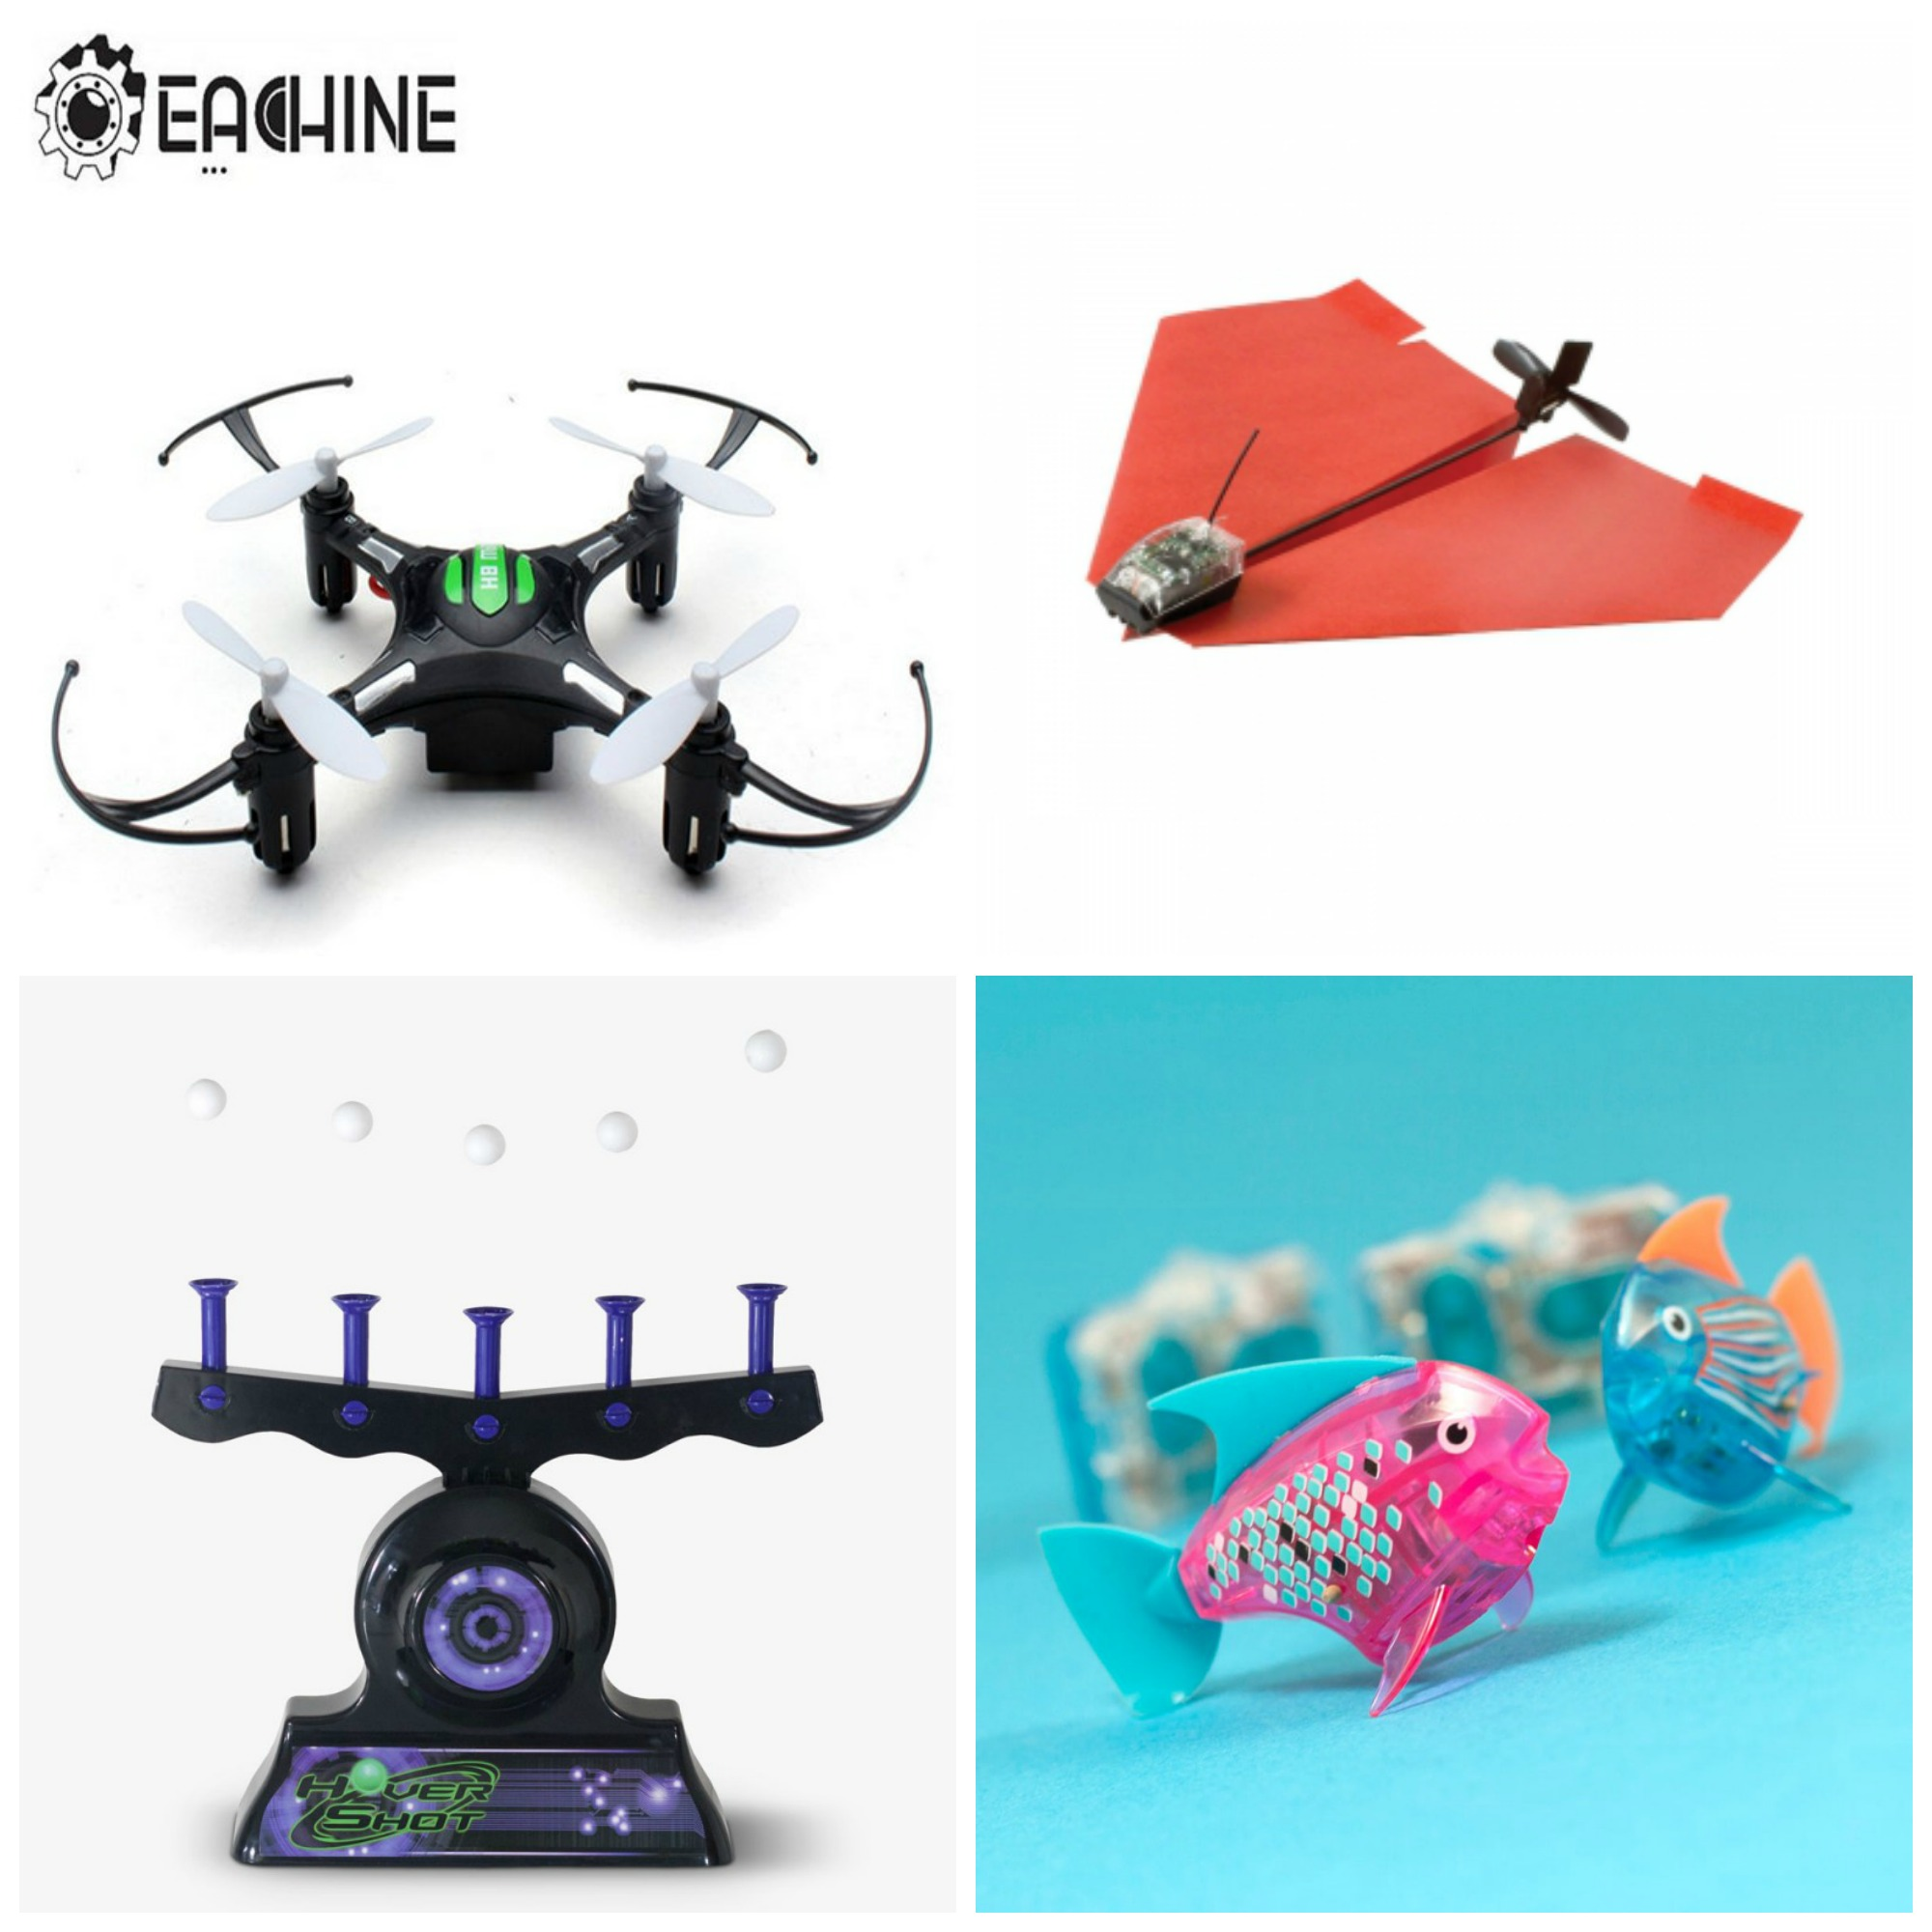 4 New Tech Toys for Kids